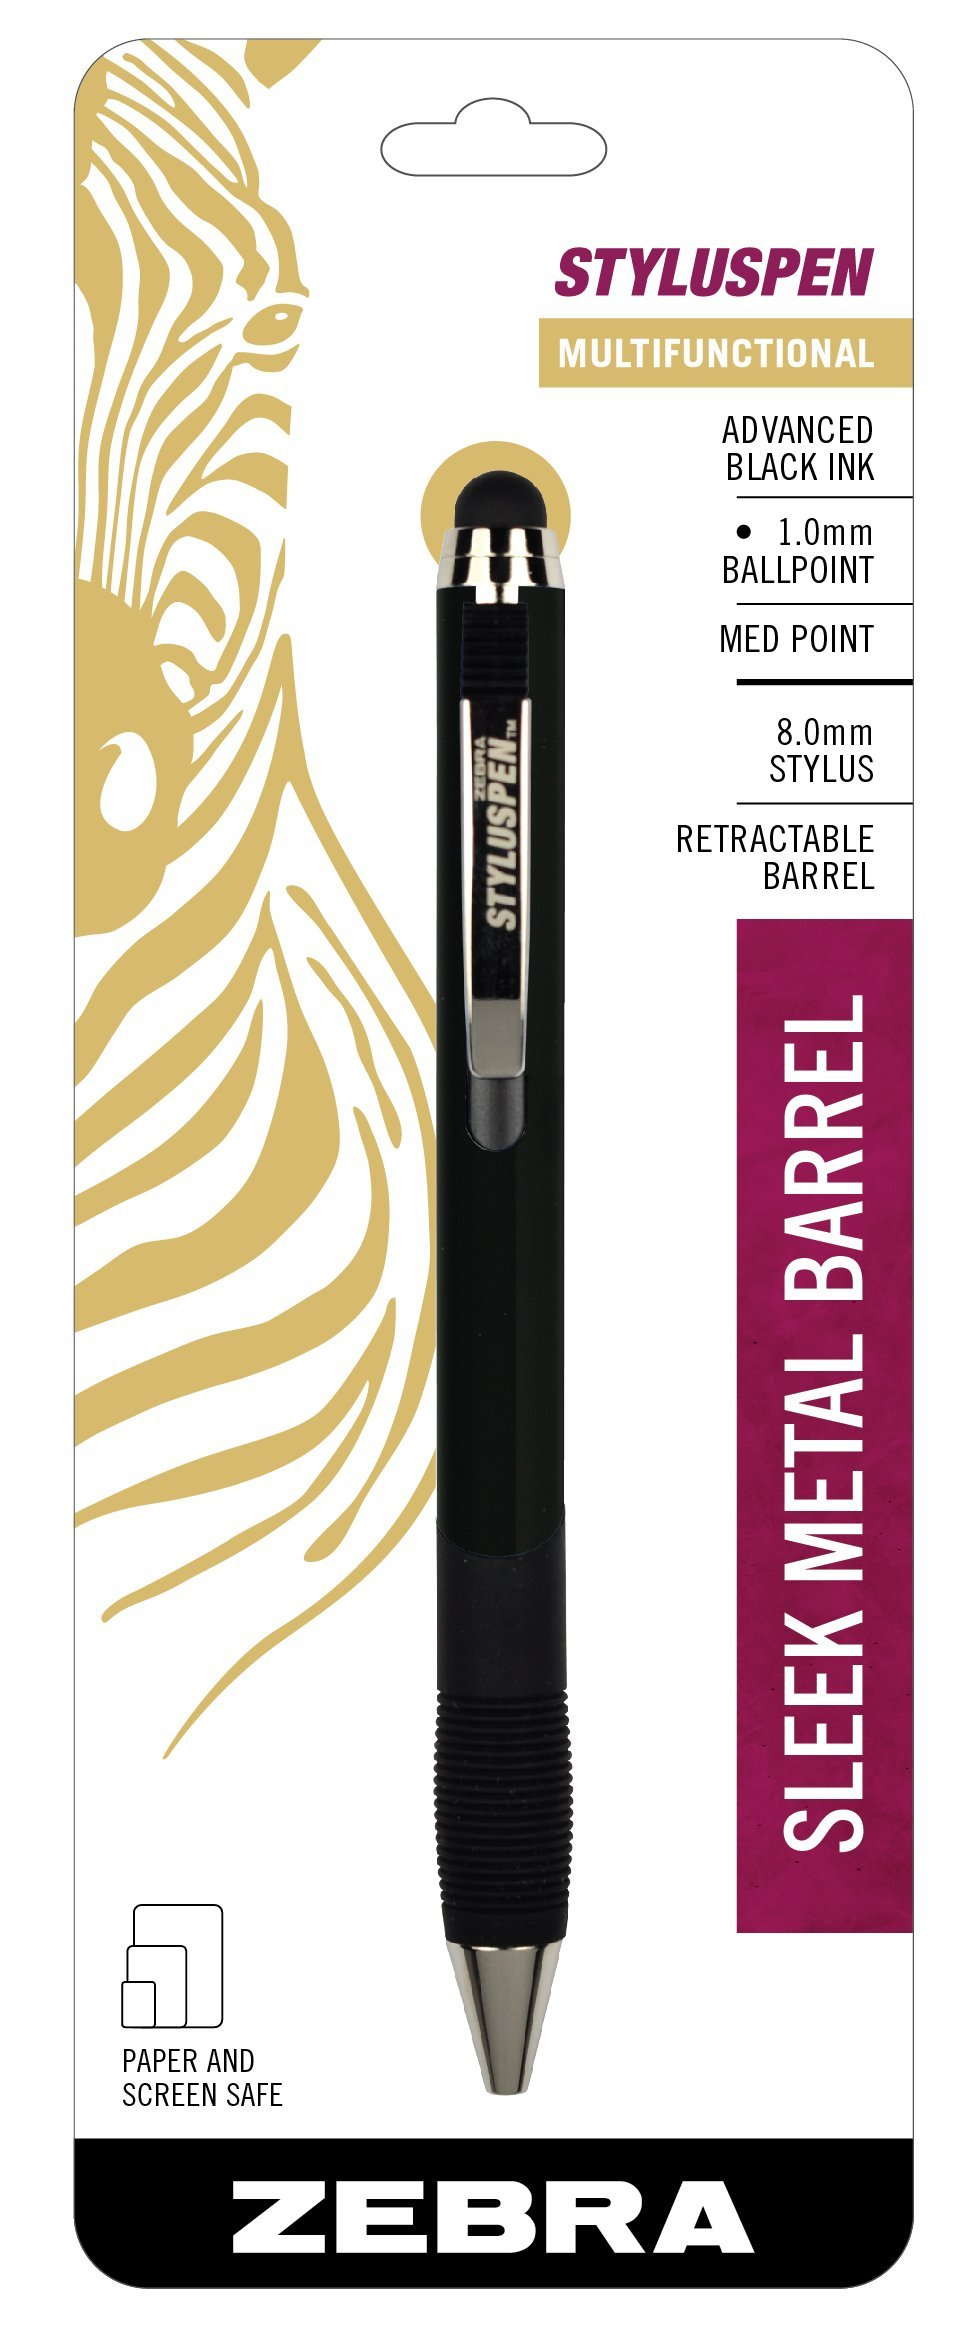 Zebra StylusPen Retractable Ballpoint Pen, Medium Point, 1.0mm, Black Ink, Onyx Barrel, 1-Count